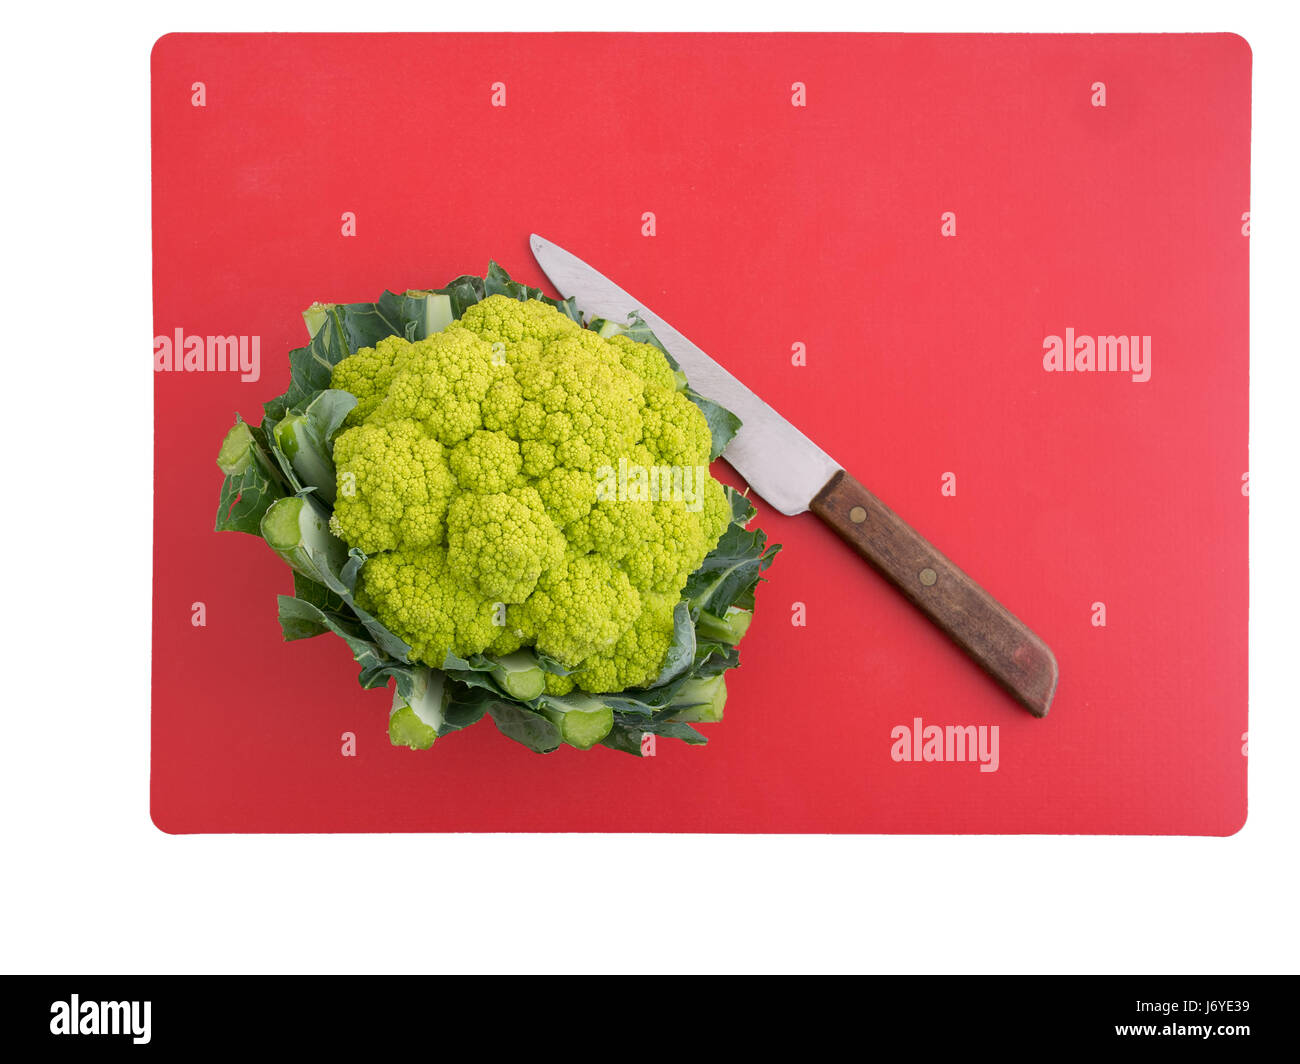 Green cauliflower. Healthy vegetable high in vitamins, minerals and micro nutrients. - Stock Image